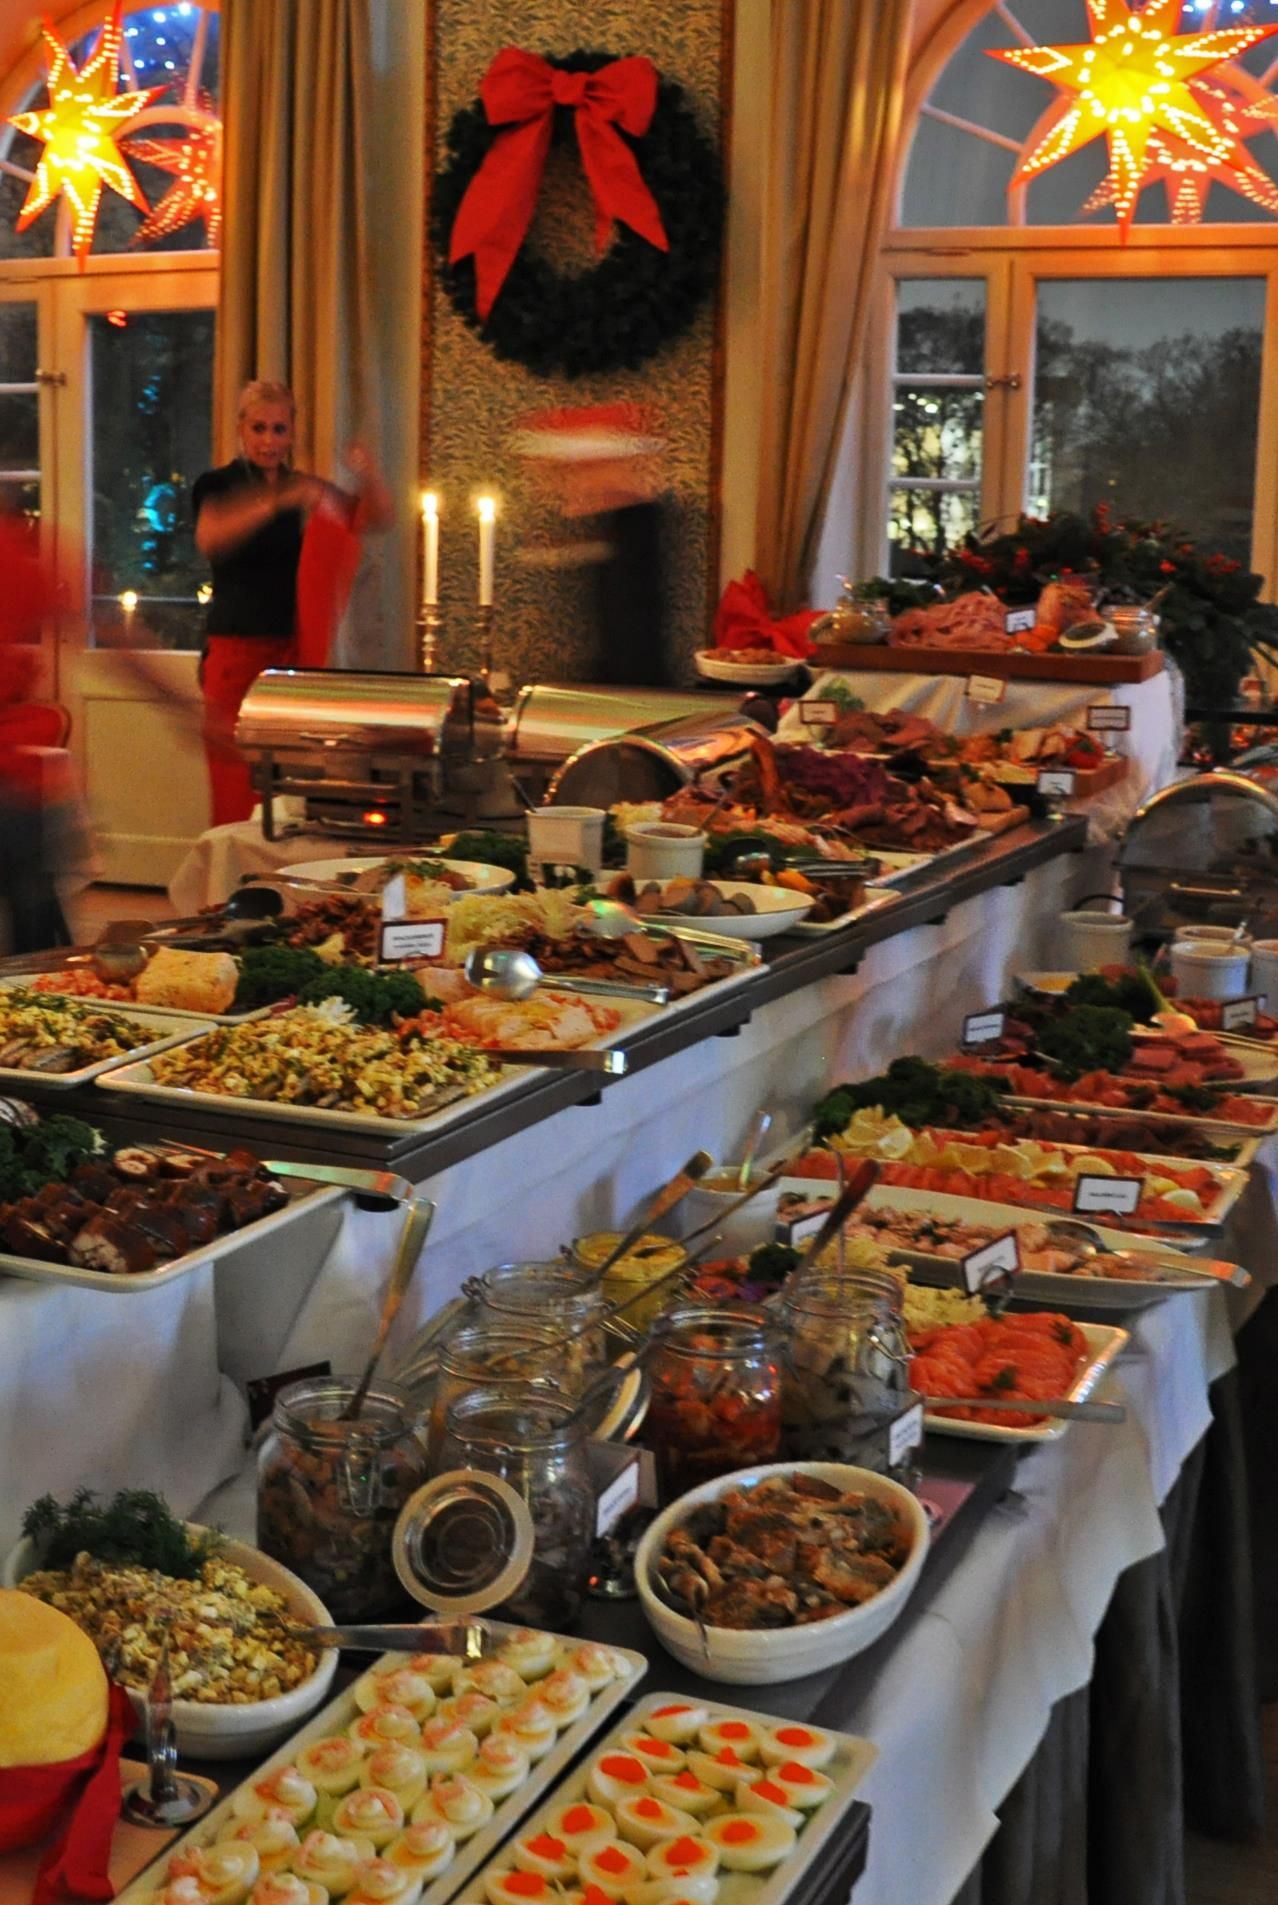 svenskt julbord swedish smrgsbord at christmas time swedish christmas food sweden christmas - Swedish Christmas Food